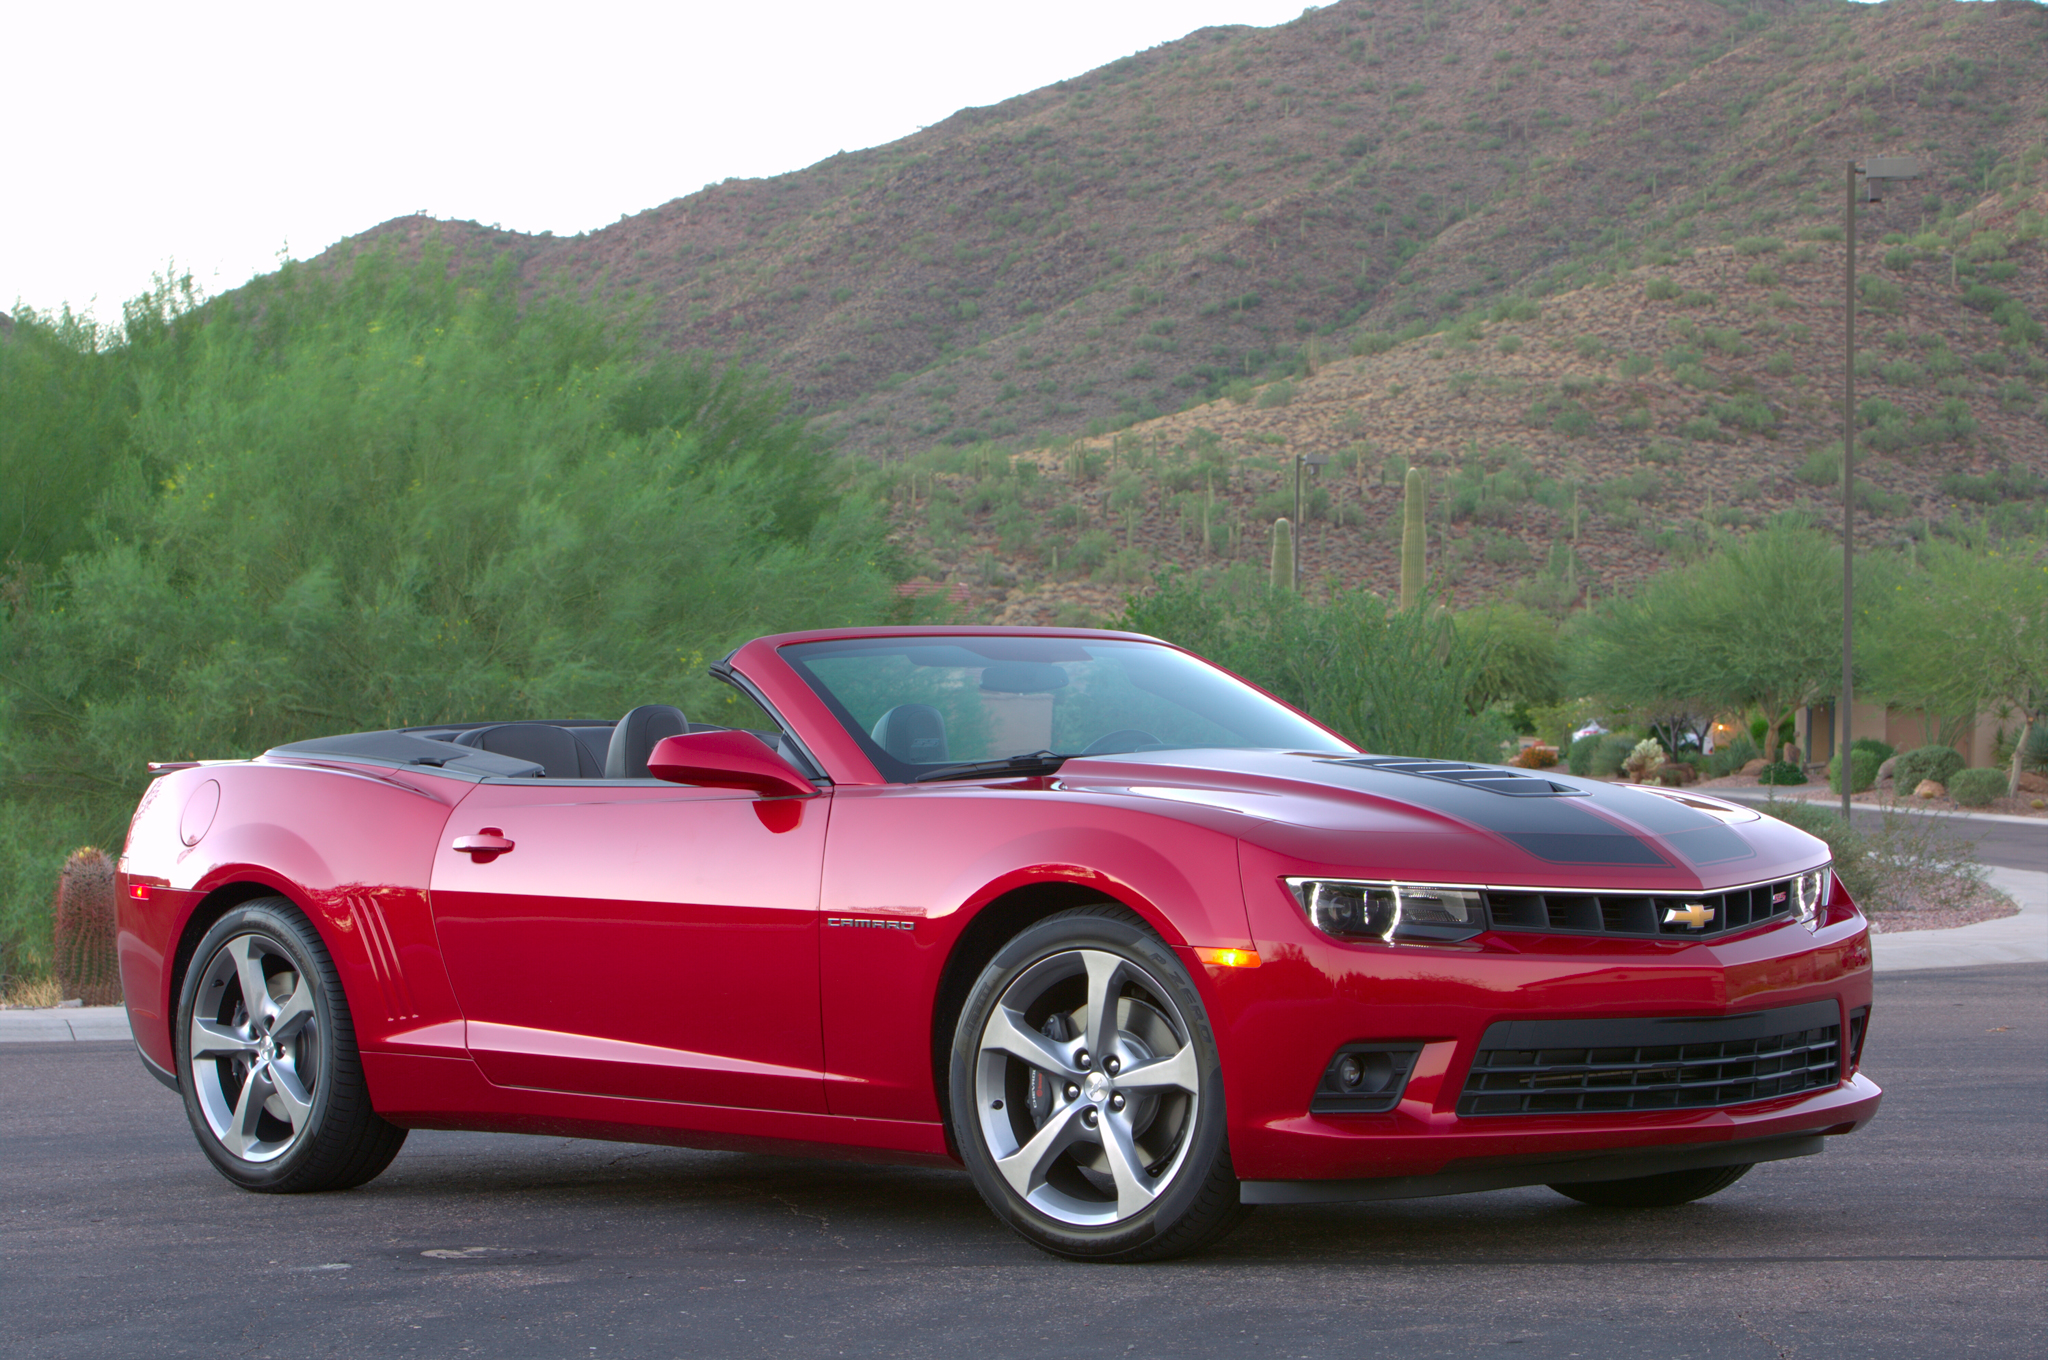 2015 chevrolet camaro convertible red